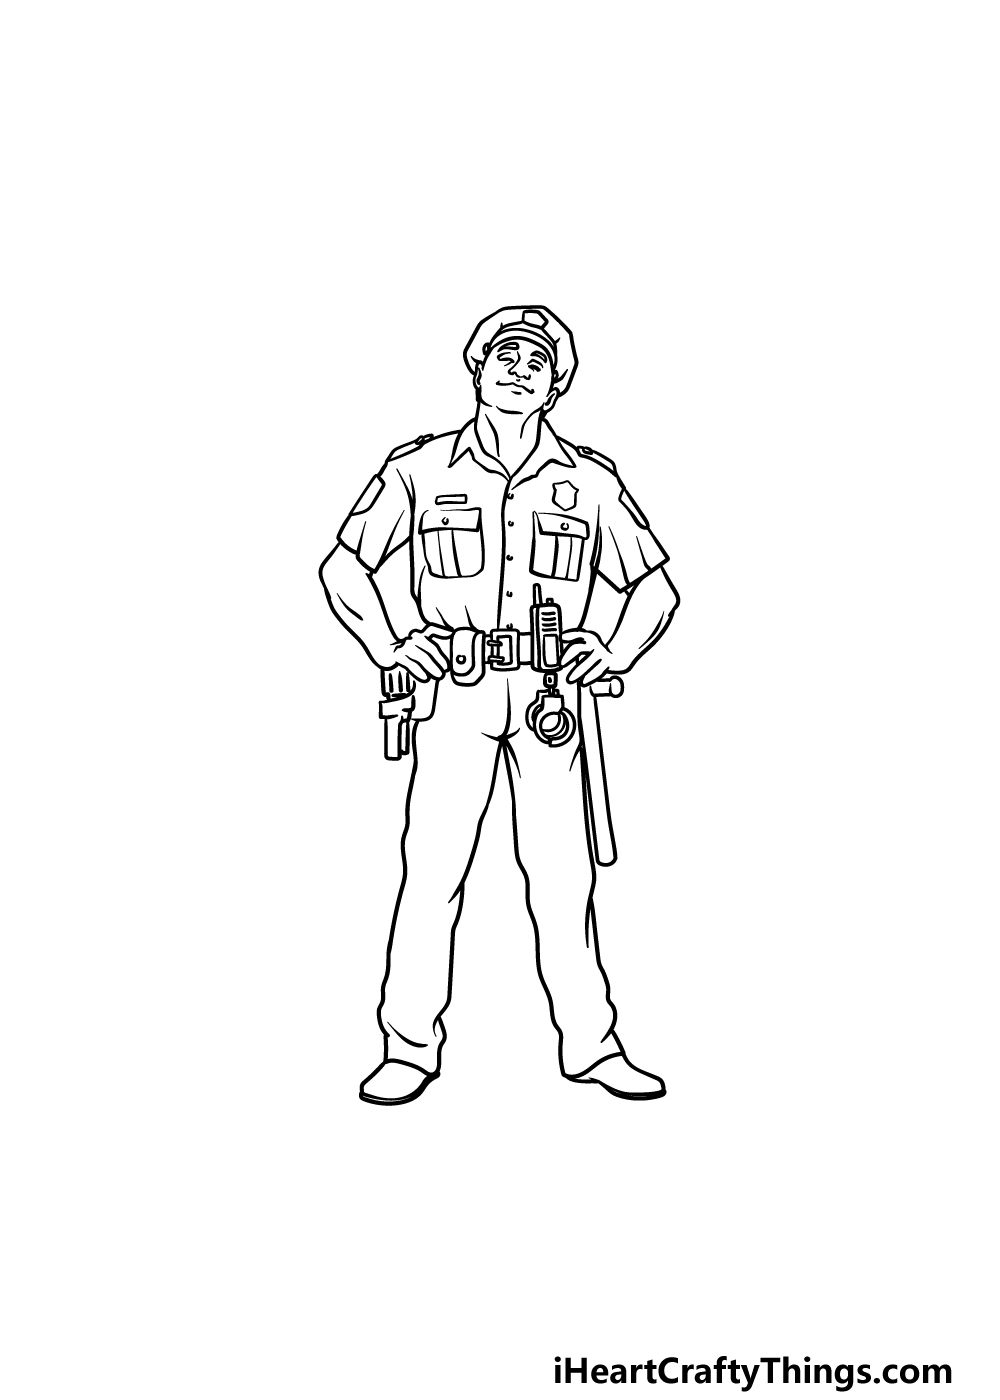 drawing a police officer step 6